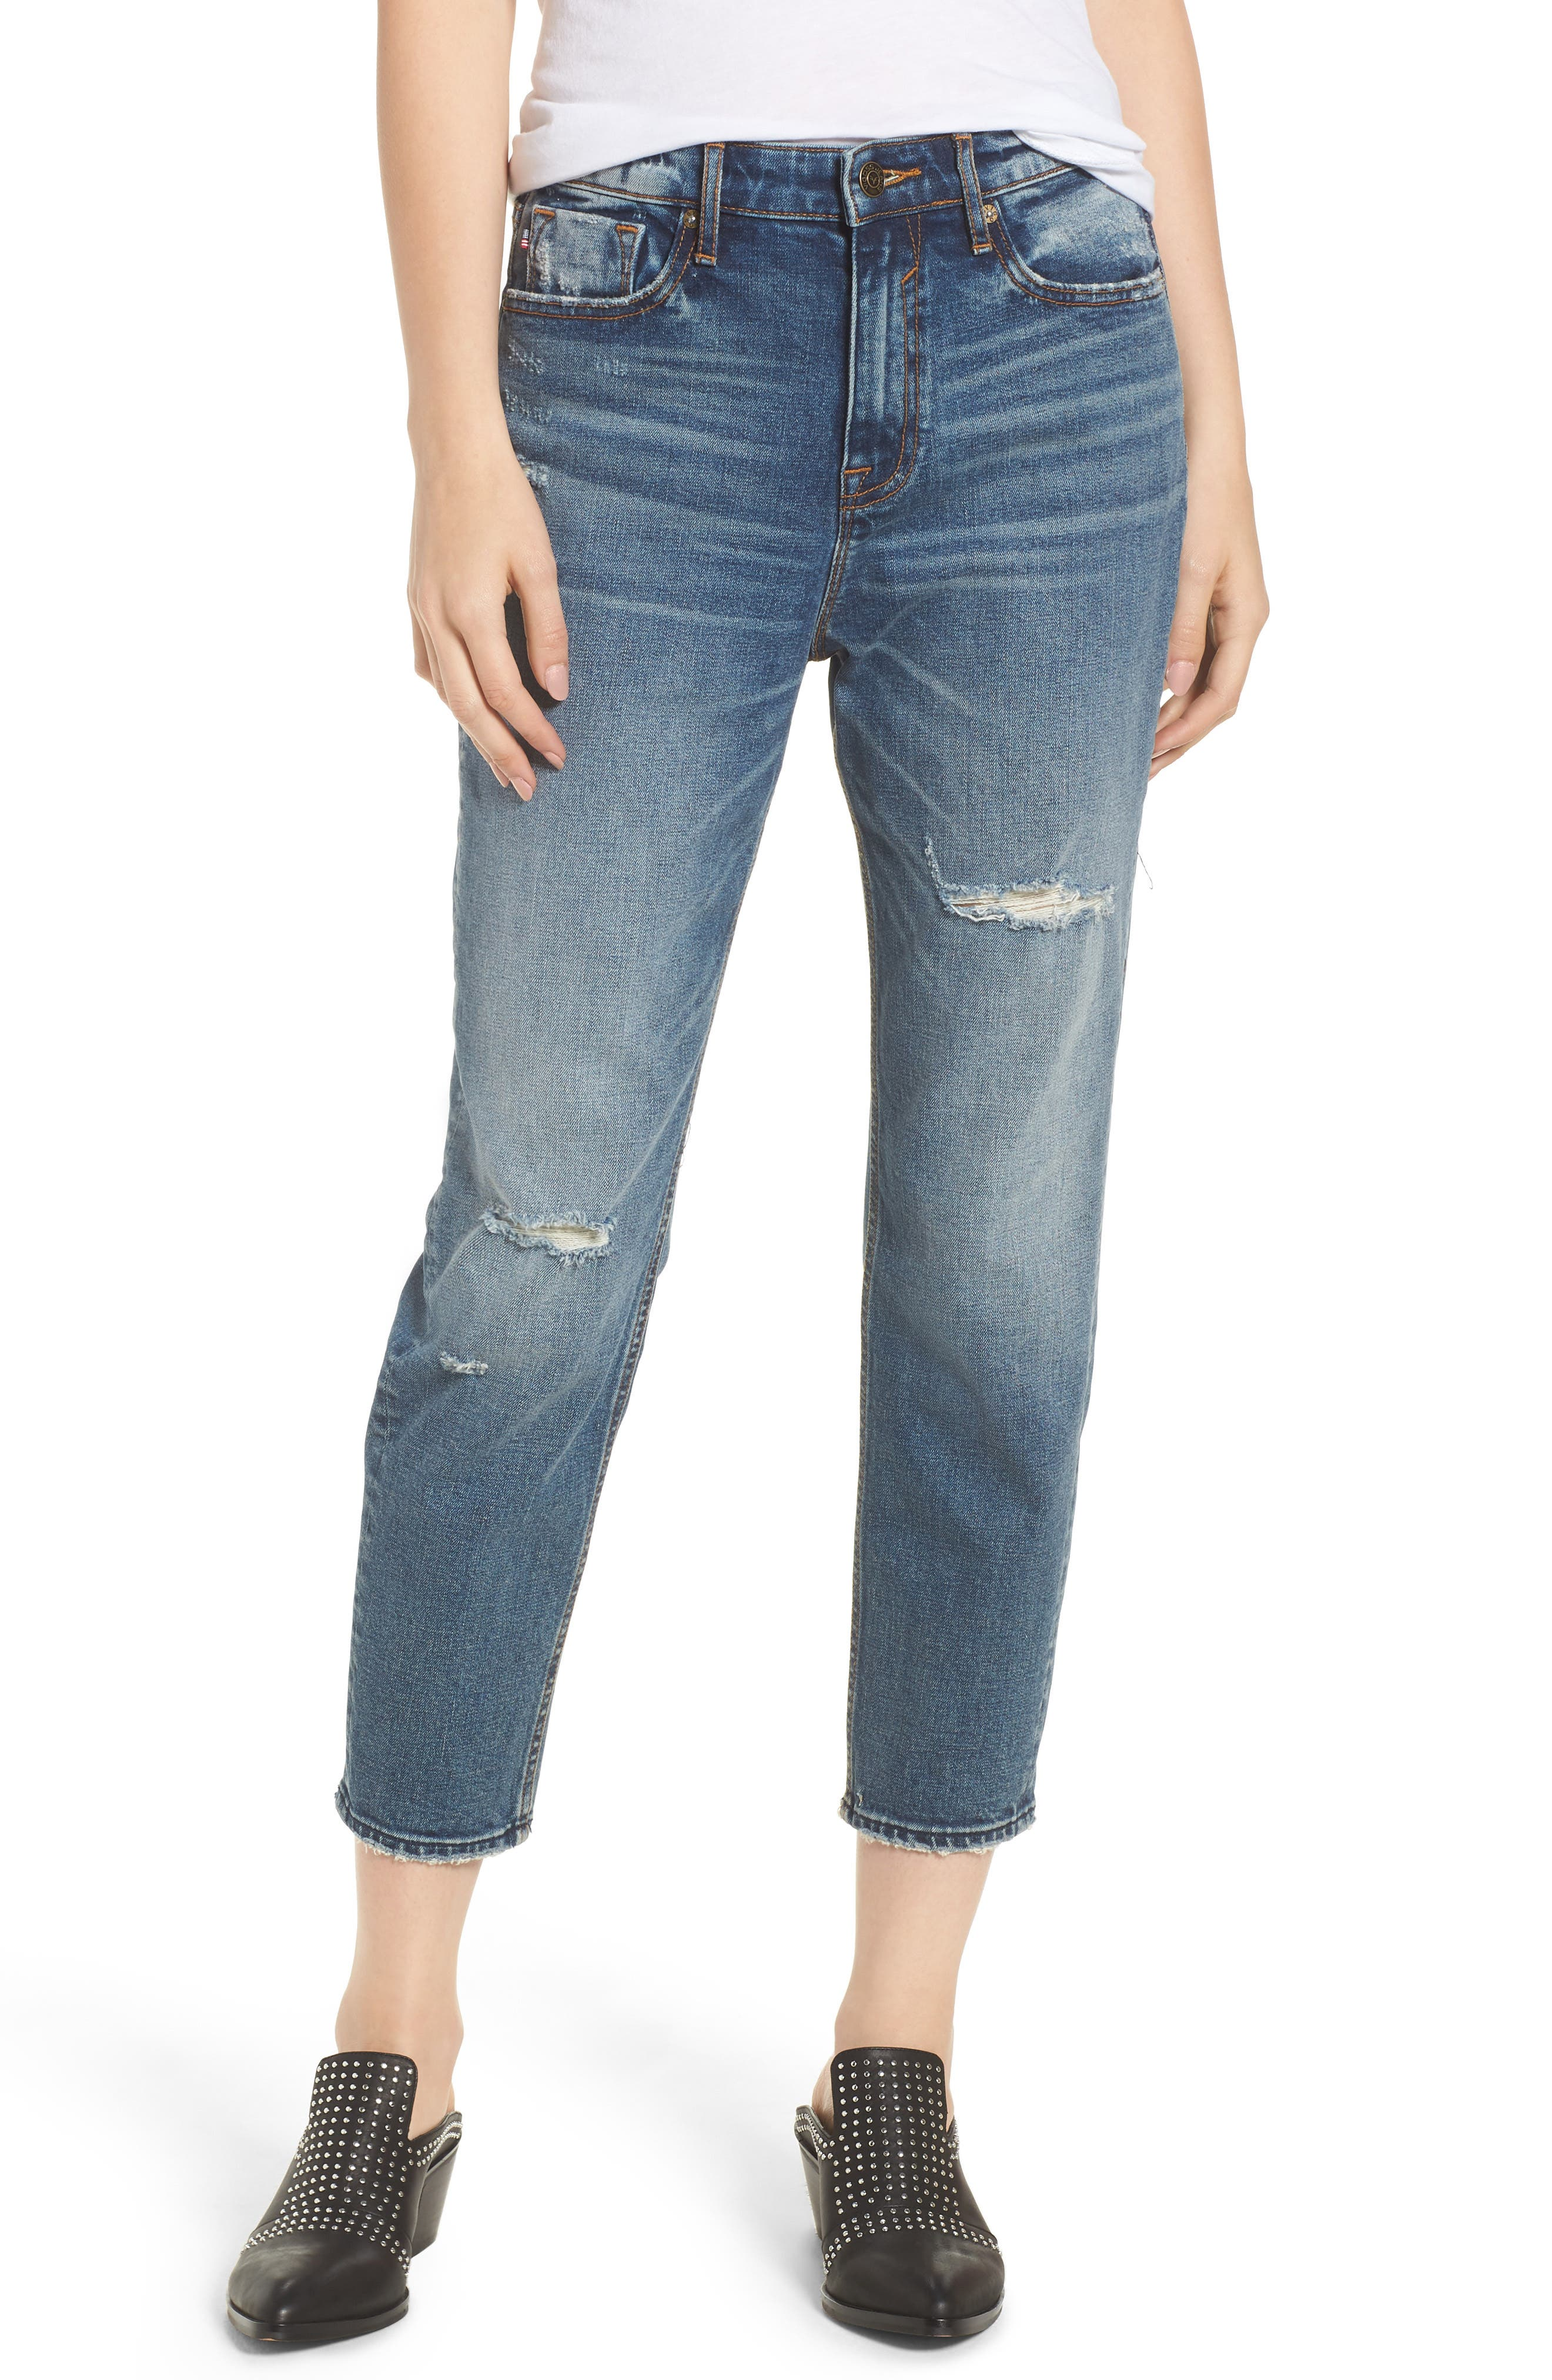 Friday Distressed Tapered Boyfriend Jeans,                             Main thumbnail 1, color,                             Medium Wash